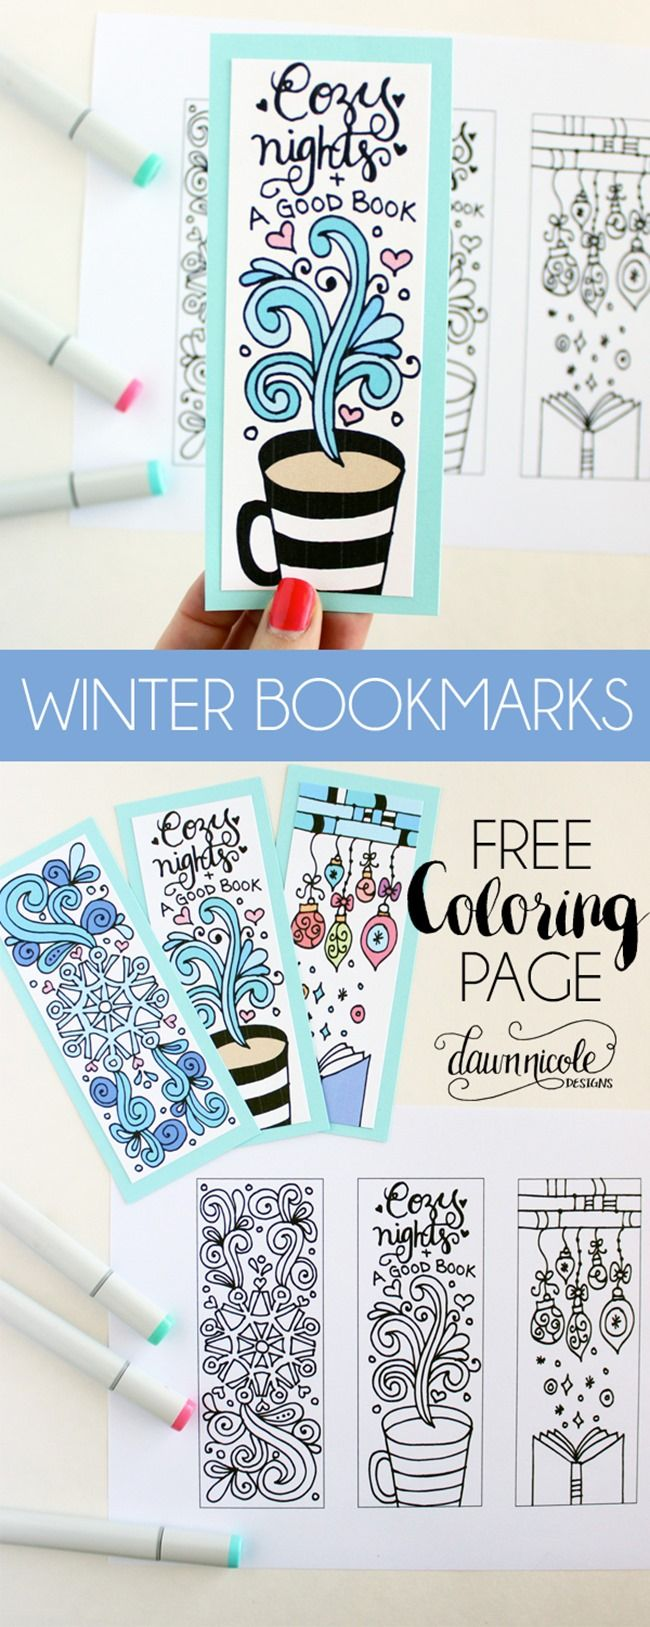 Bookmarks to color of dr king - Christmas Printable Coloring Page Winter Bookmarks